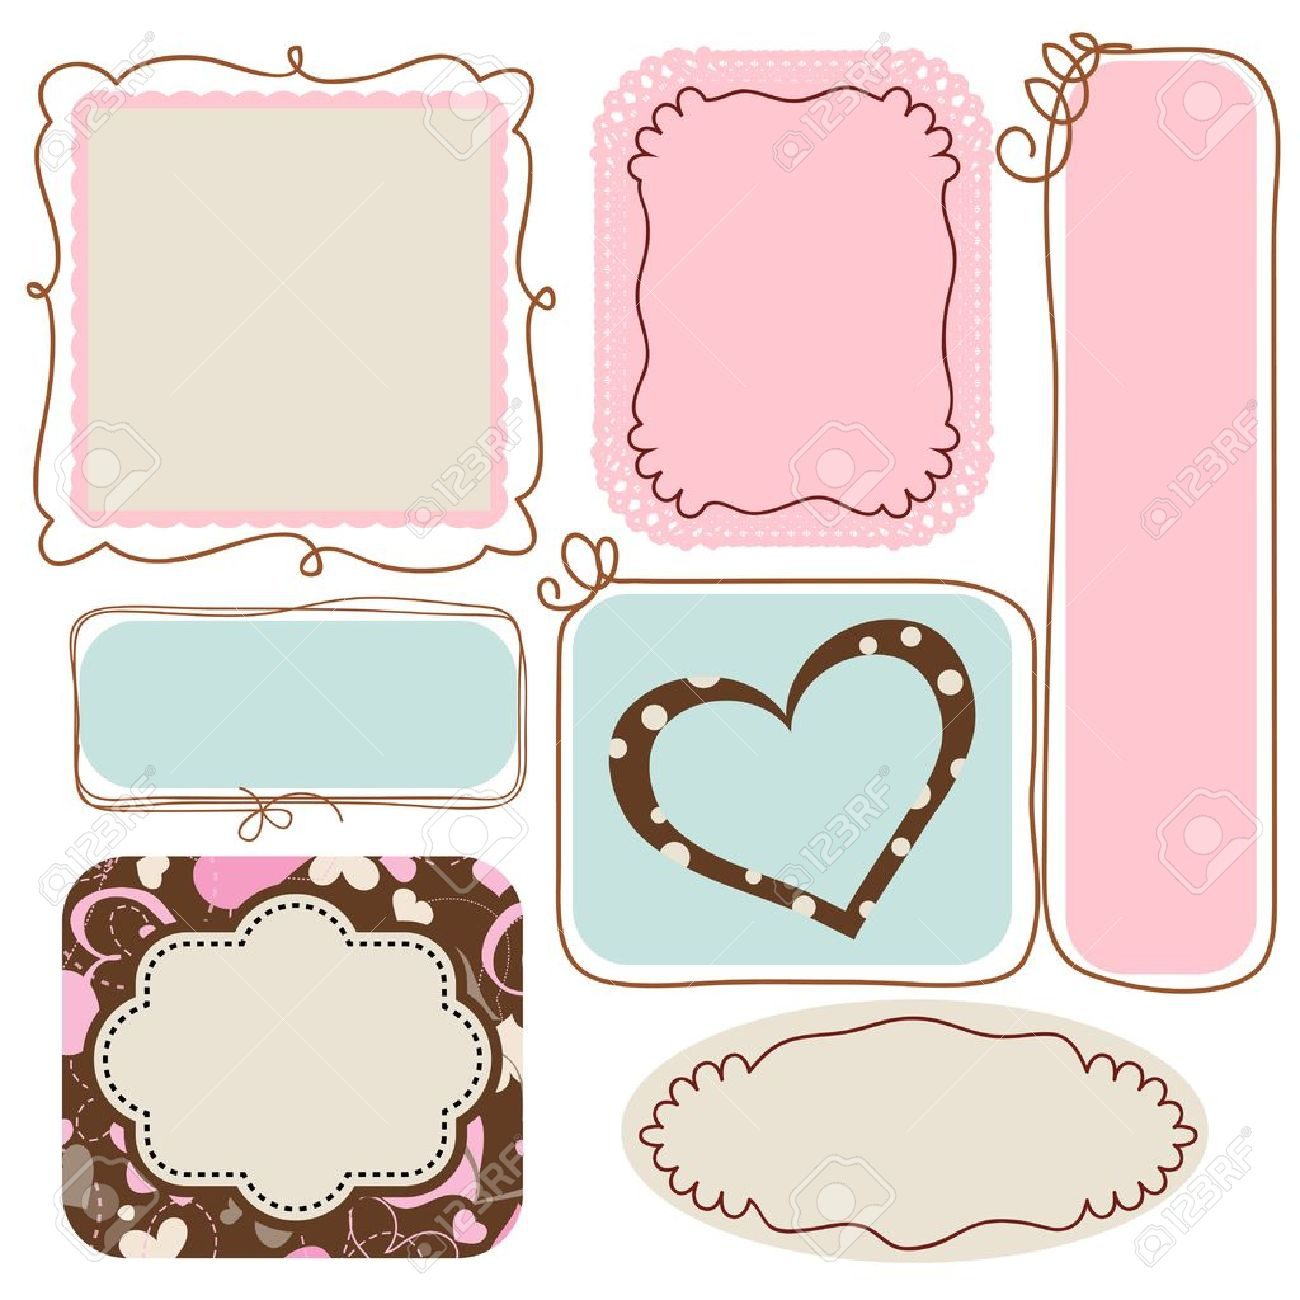 Blank Cute Frames For Text Royalty Free Cliparts, Vectors, And Stock ...